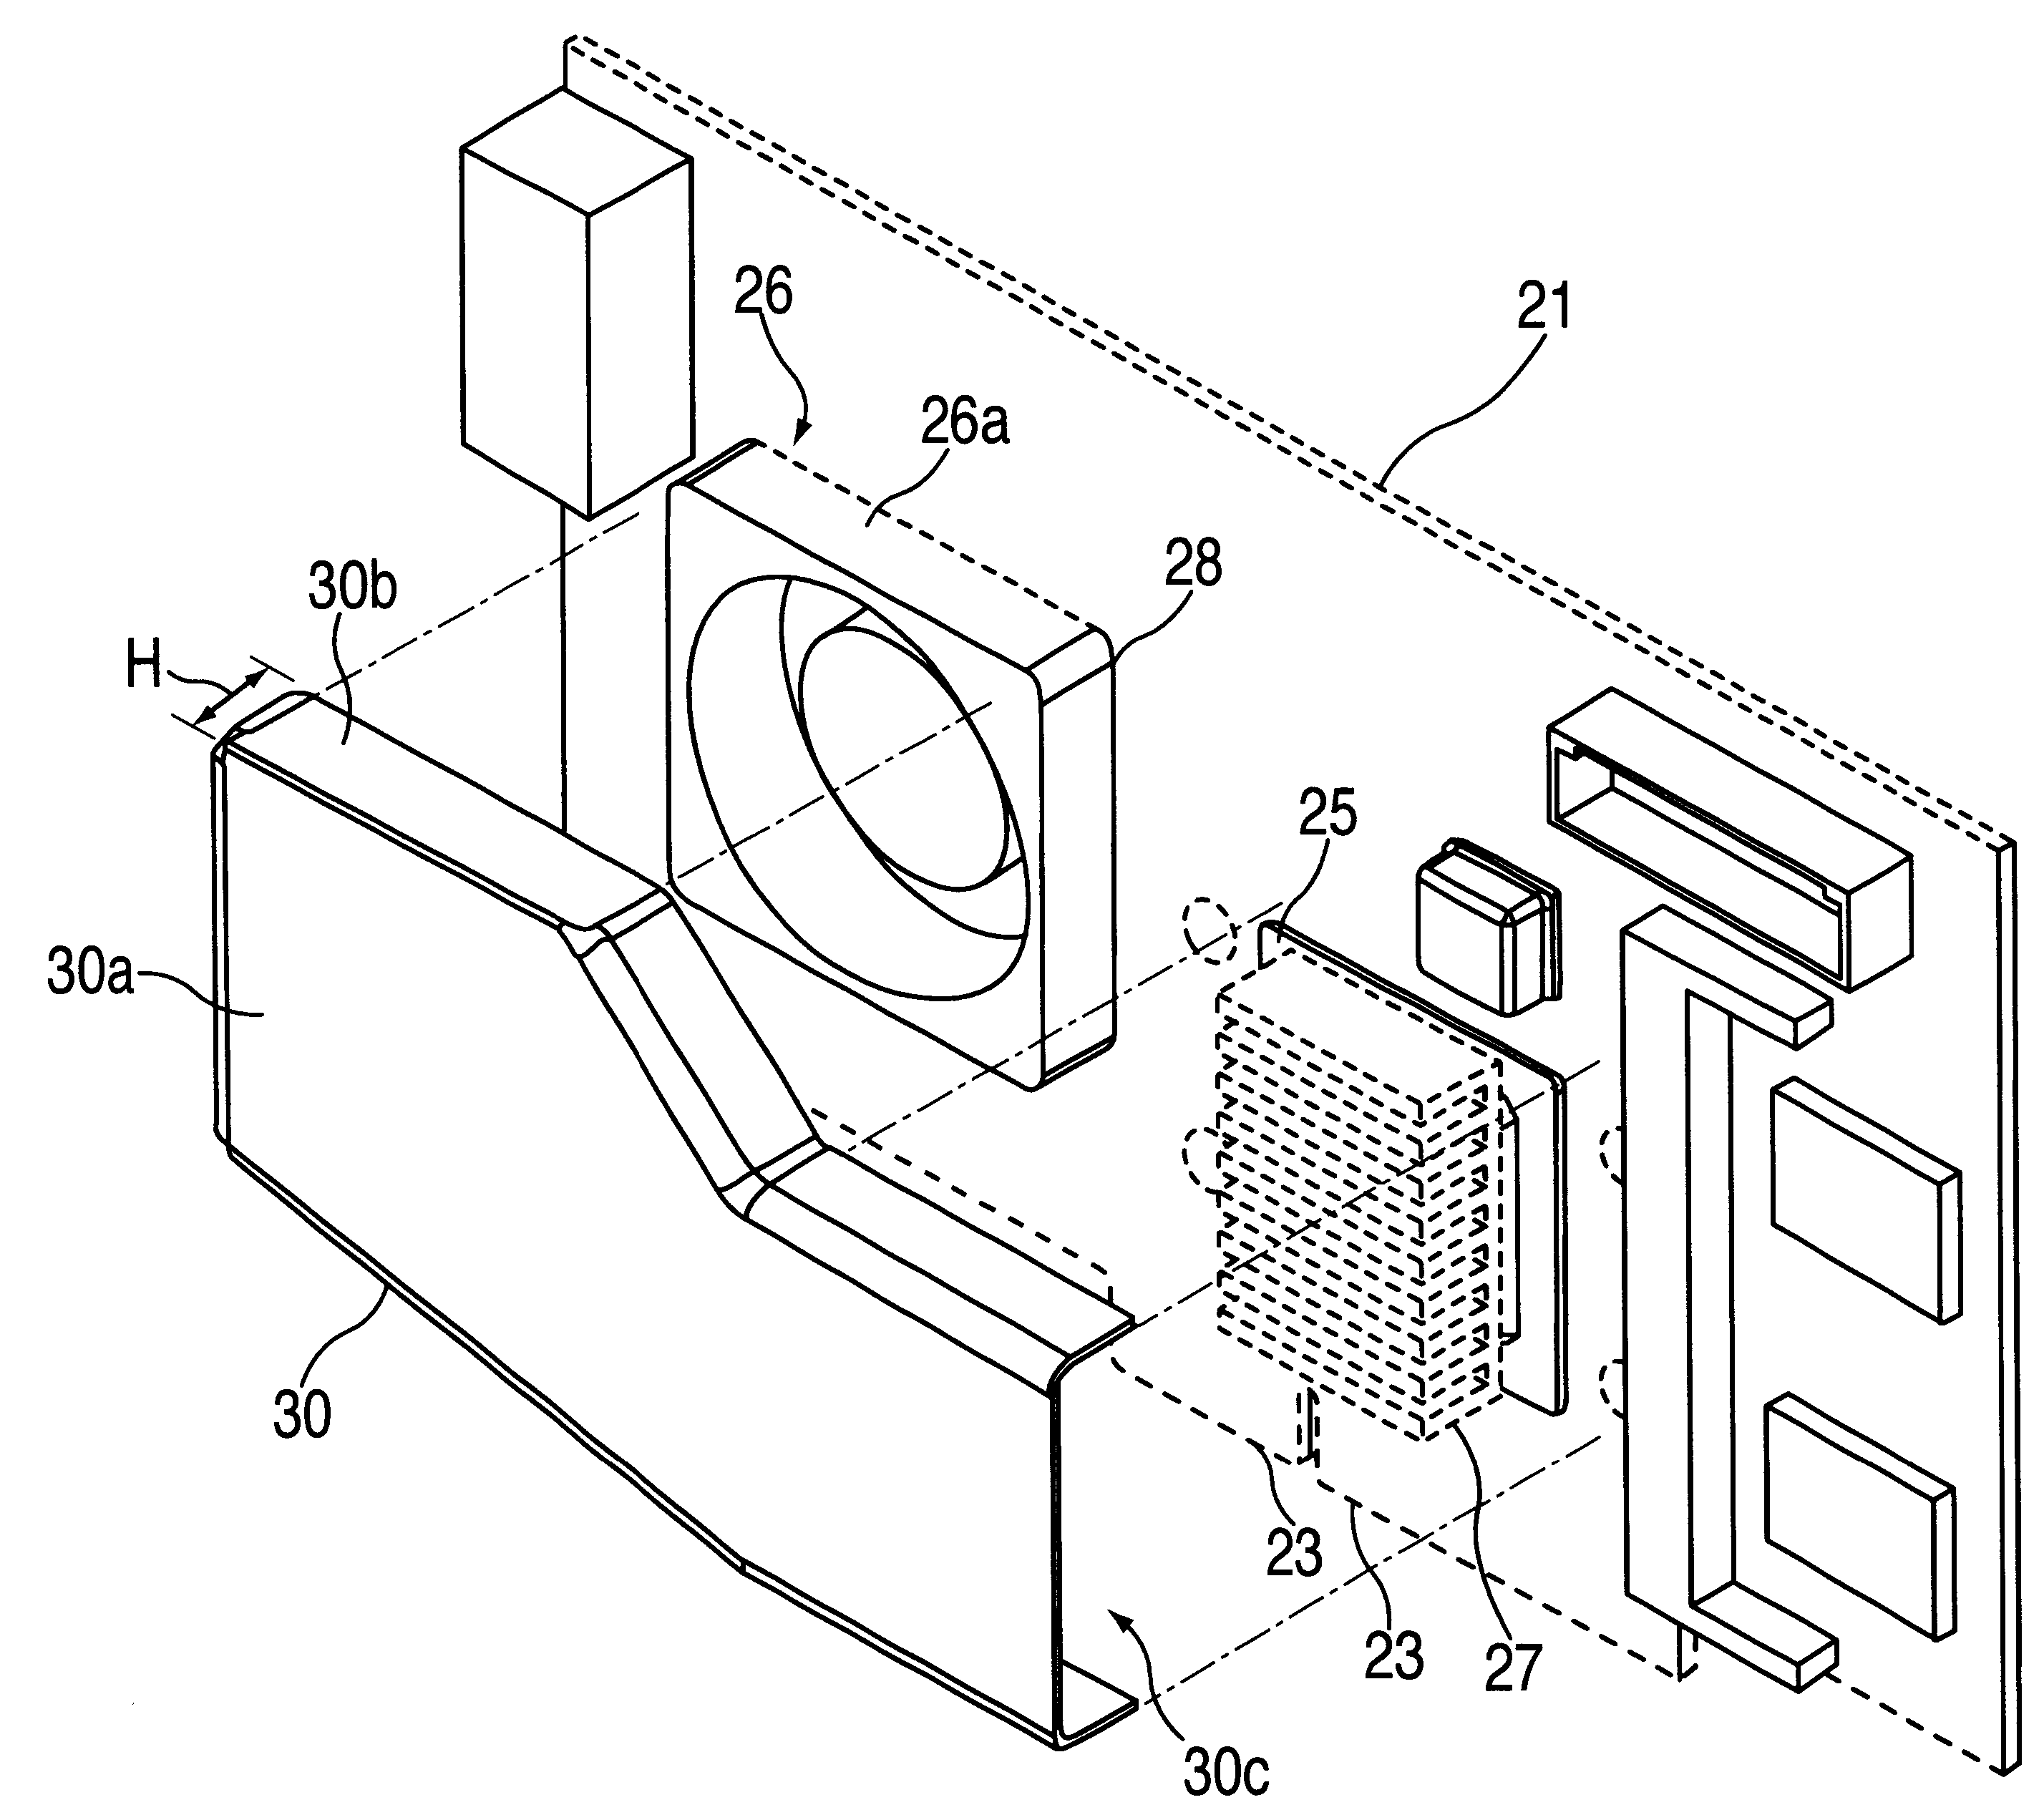 patent us6452797 fan cooled card patents Nokia Lumia 510 patent drawing